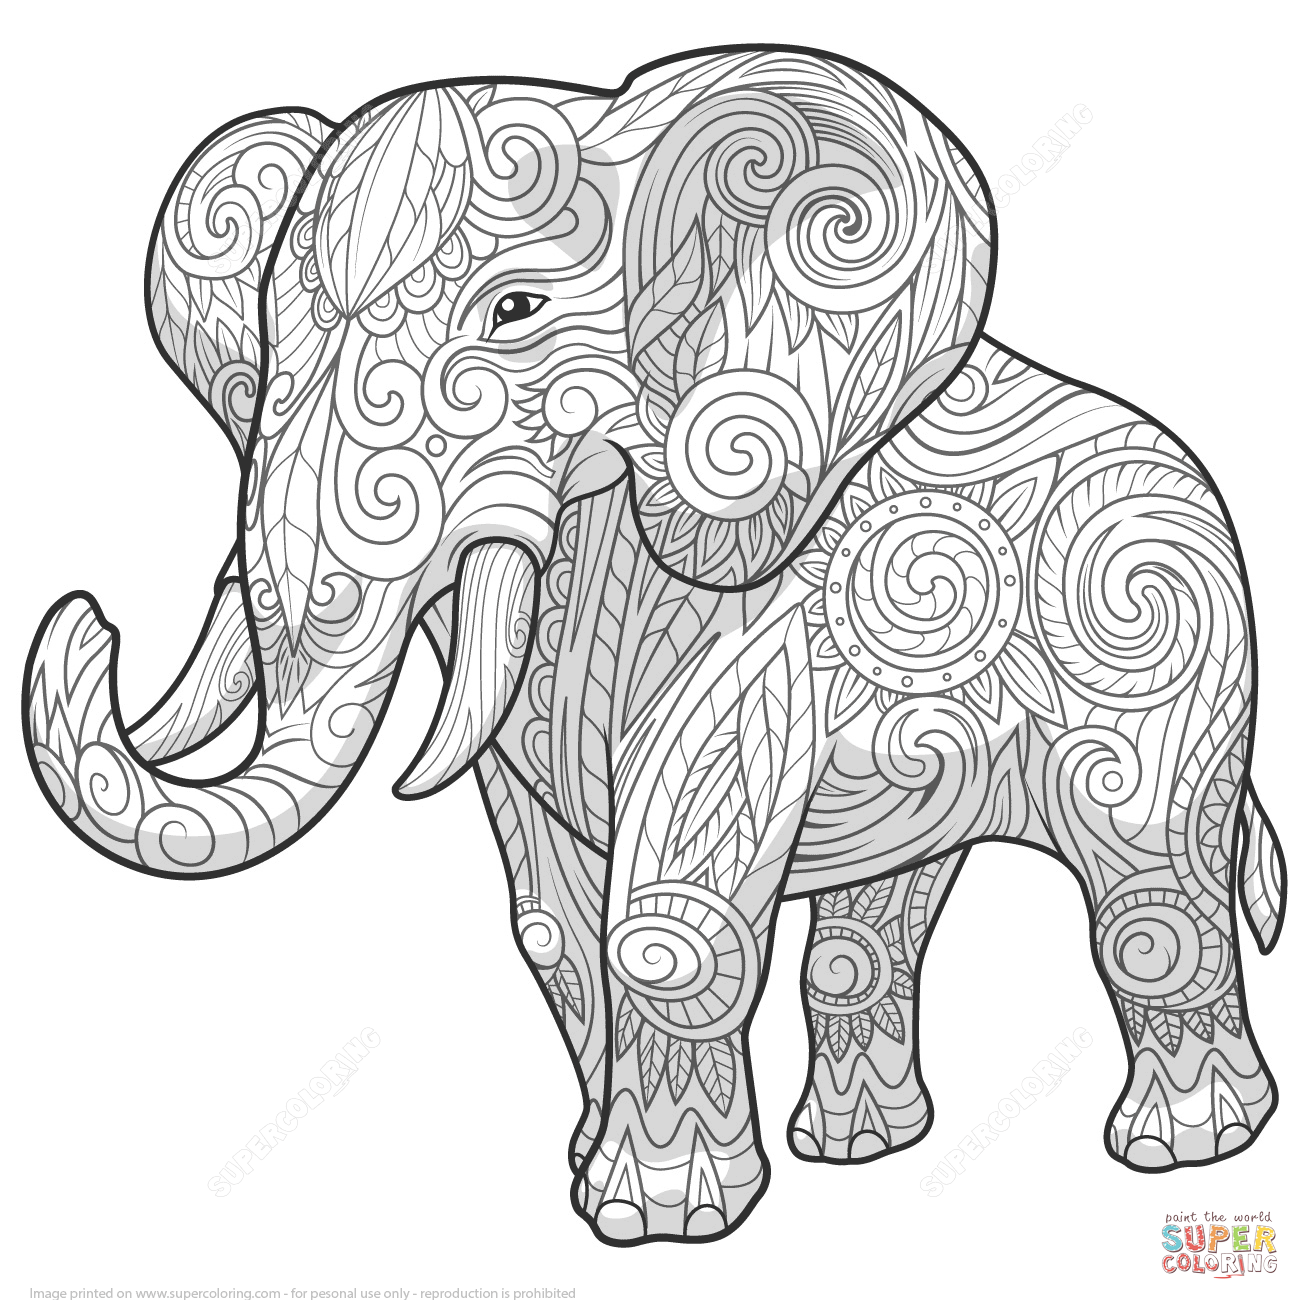 mandala elephant coloring pages easy - photo#14